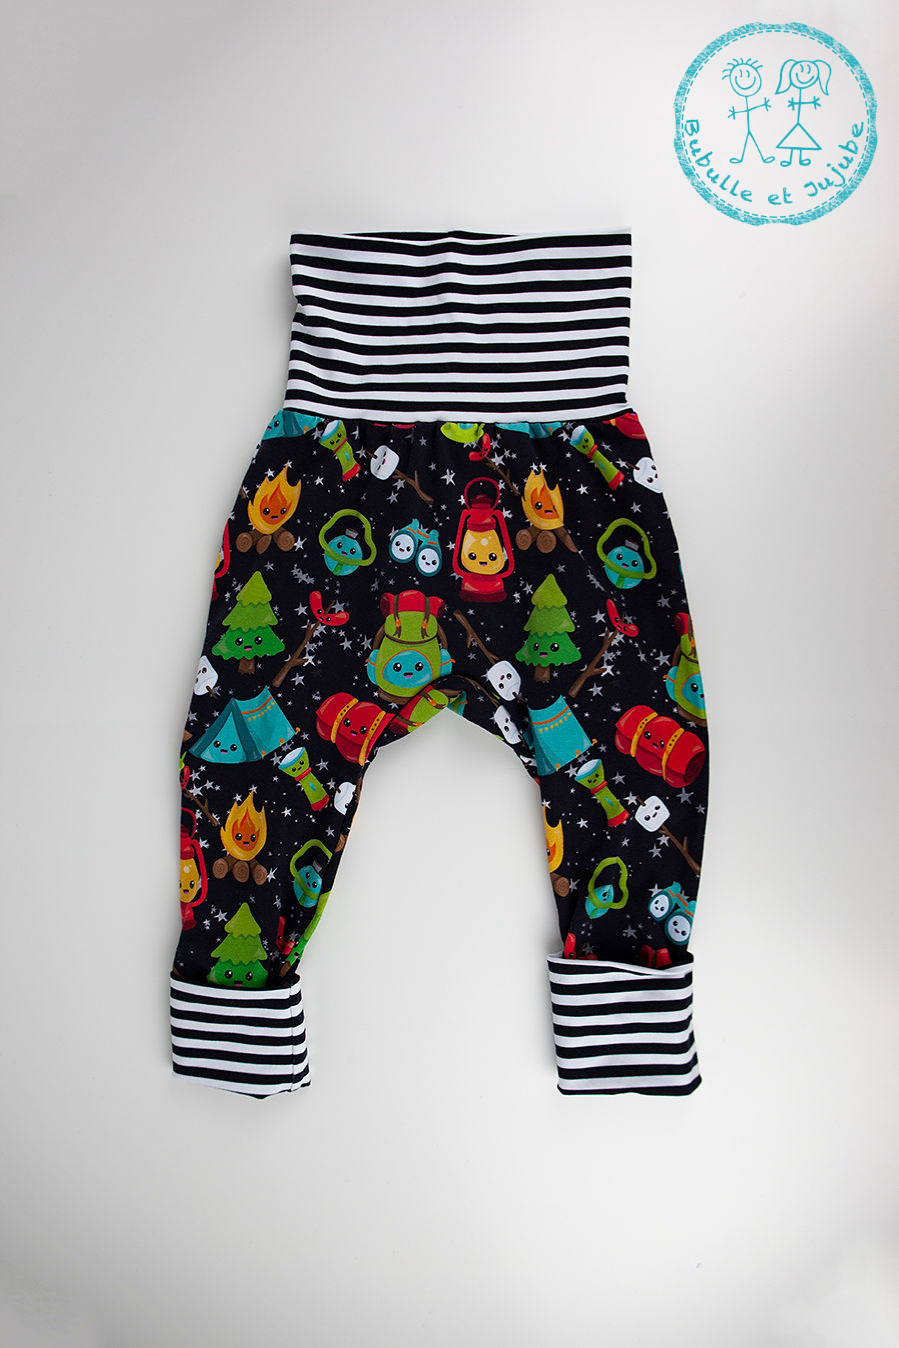 Pantalons évolutifs - Camping / Grow with me pants - Camping